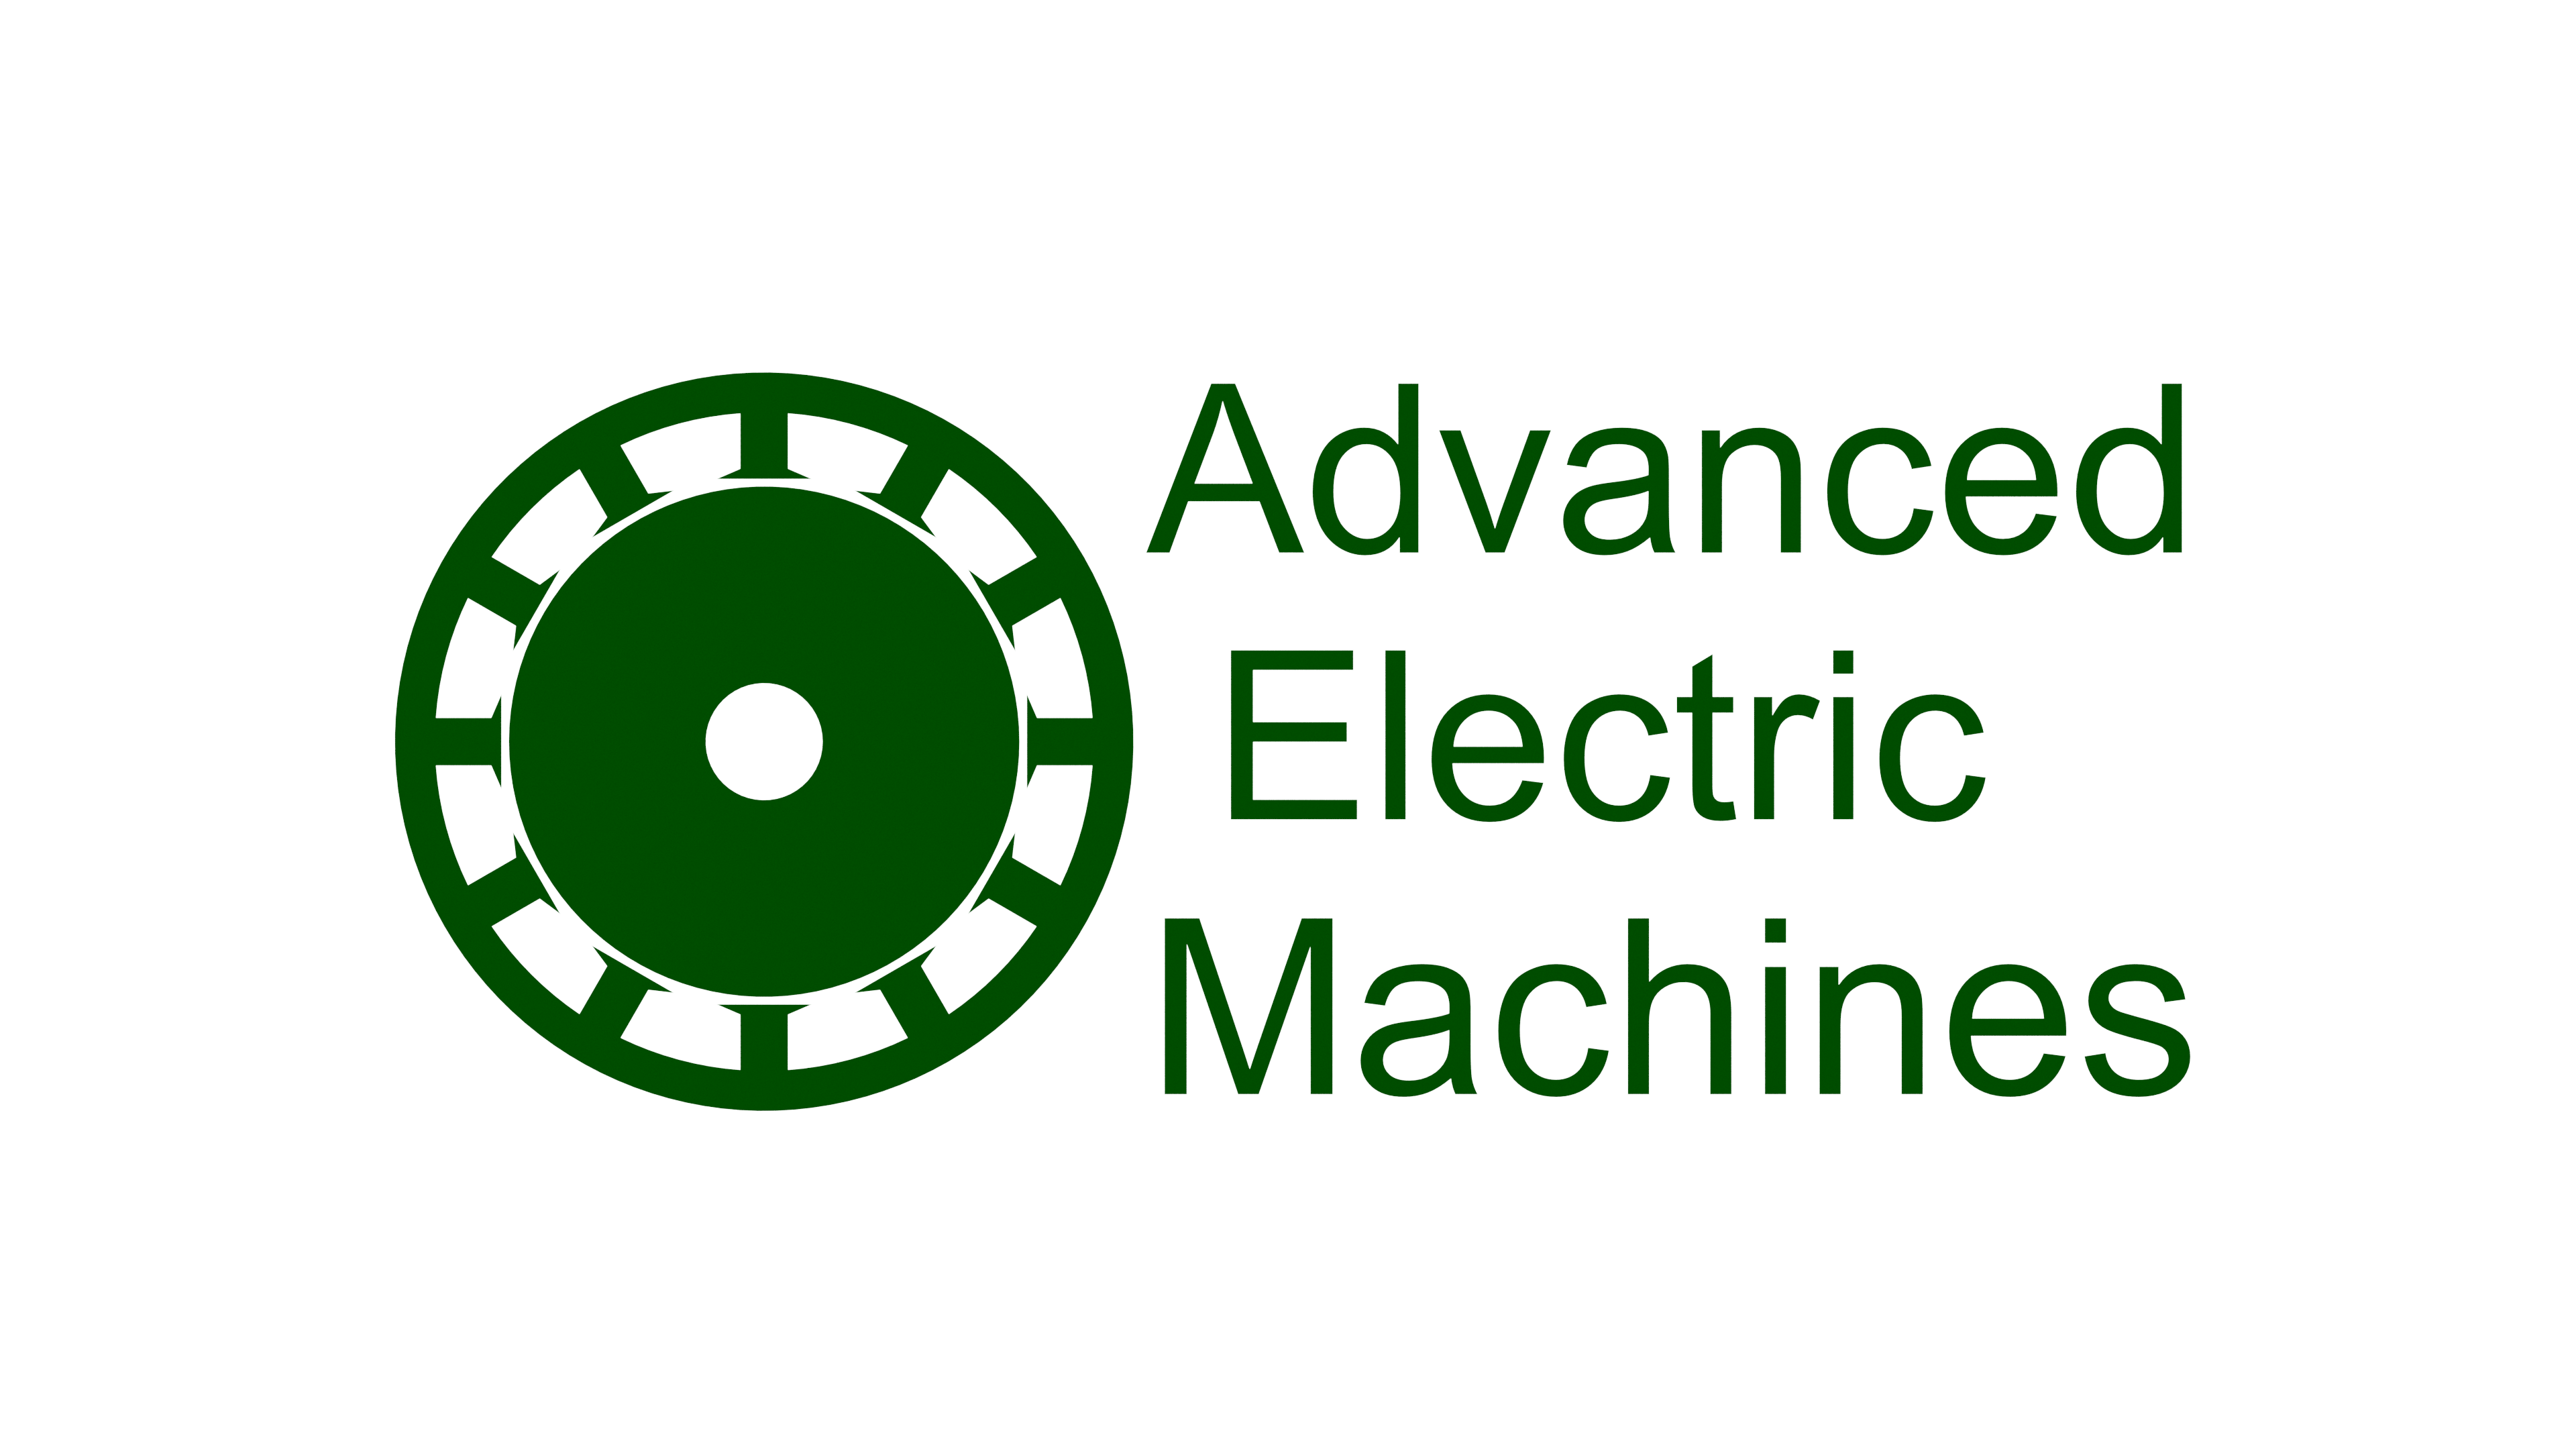 Advanced Electric Machines